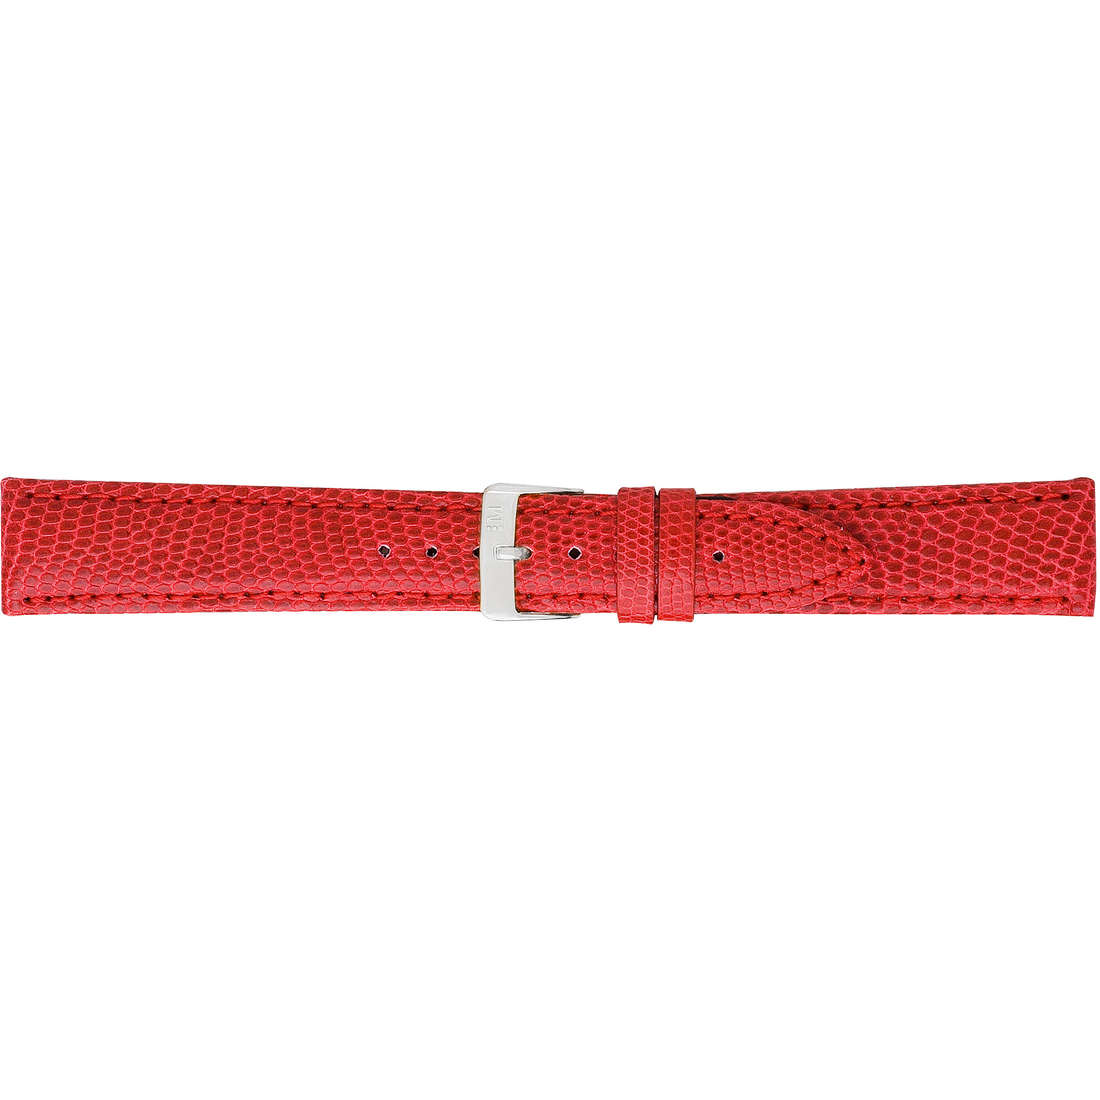 watch watch bands watch straps man Morellato Pelli Preziose A01X2053372083CR10